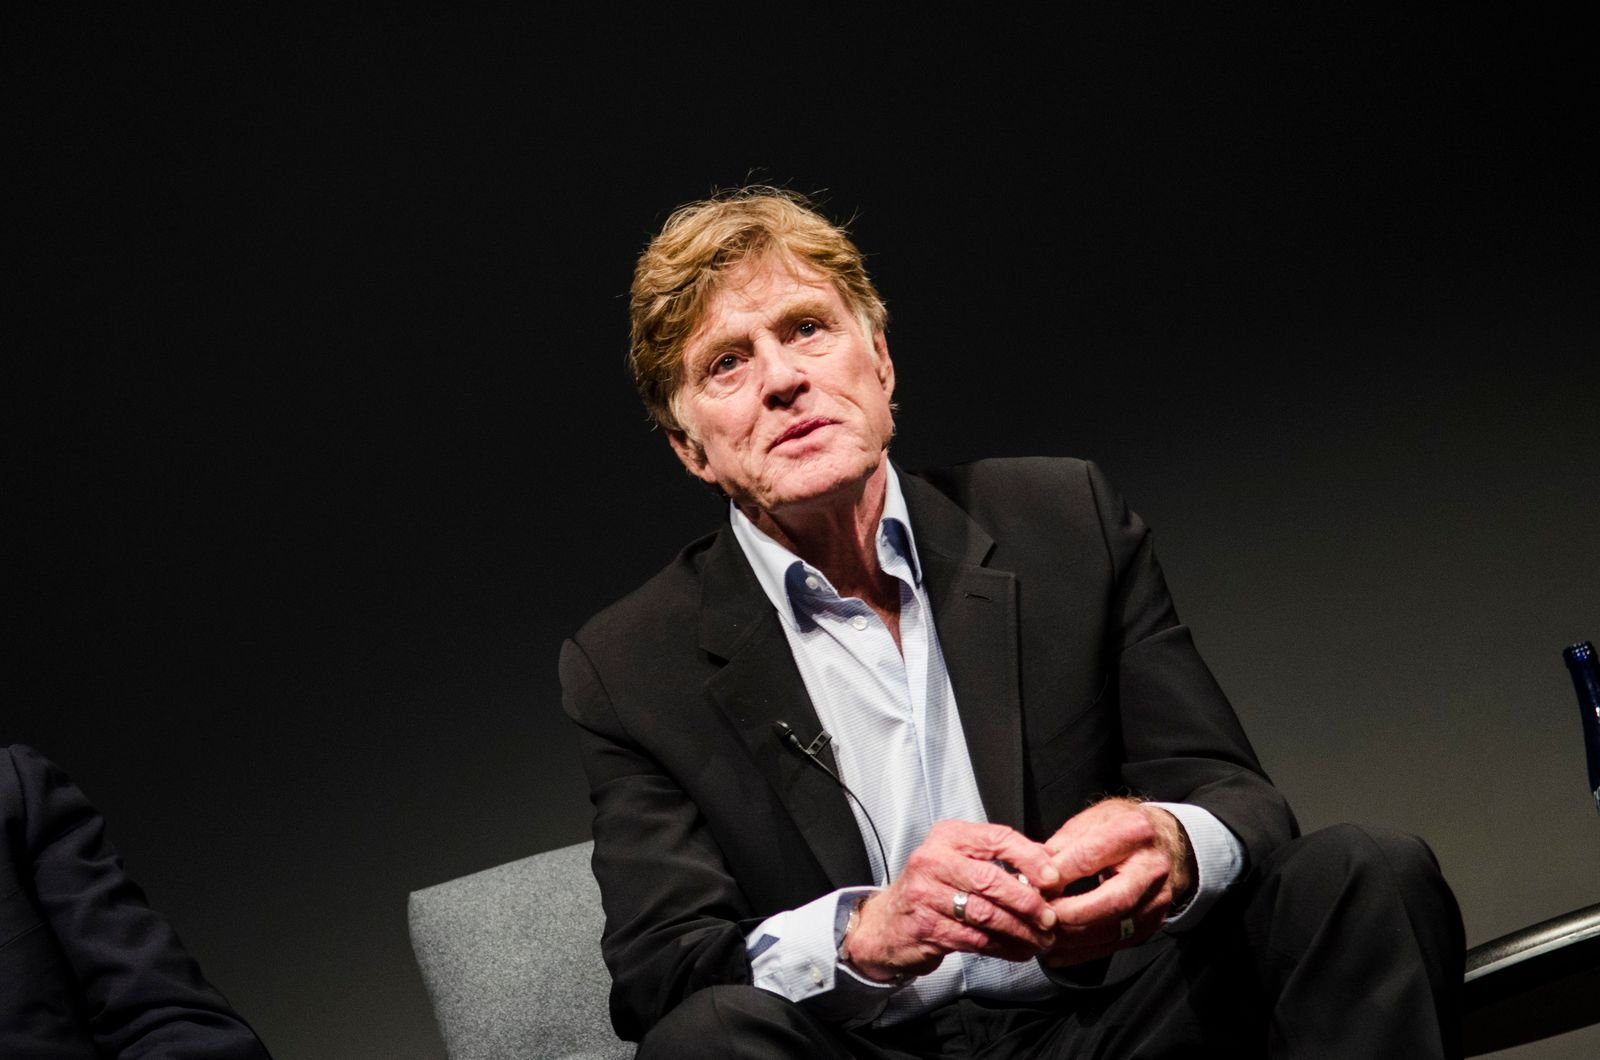 Robert Redford au Newseum le 18 avril 2013 à Washington, DC. | Photo : Getty Images